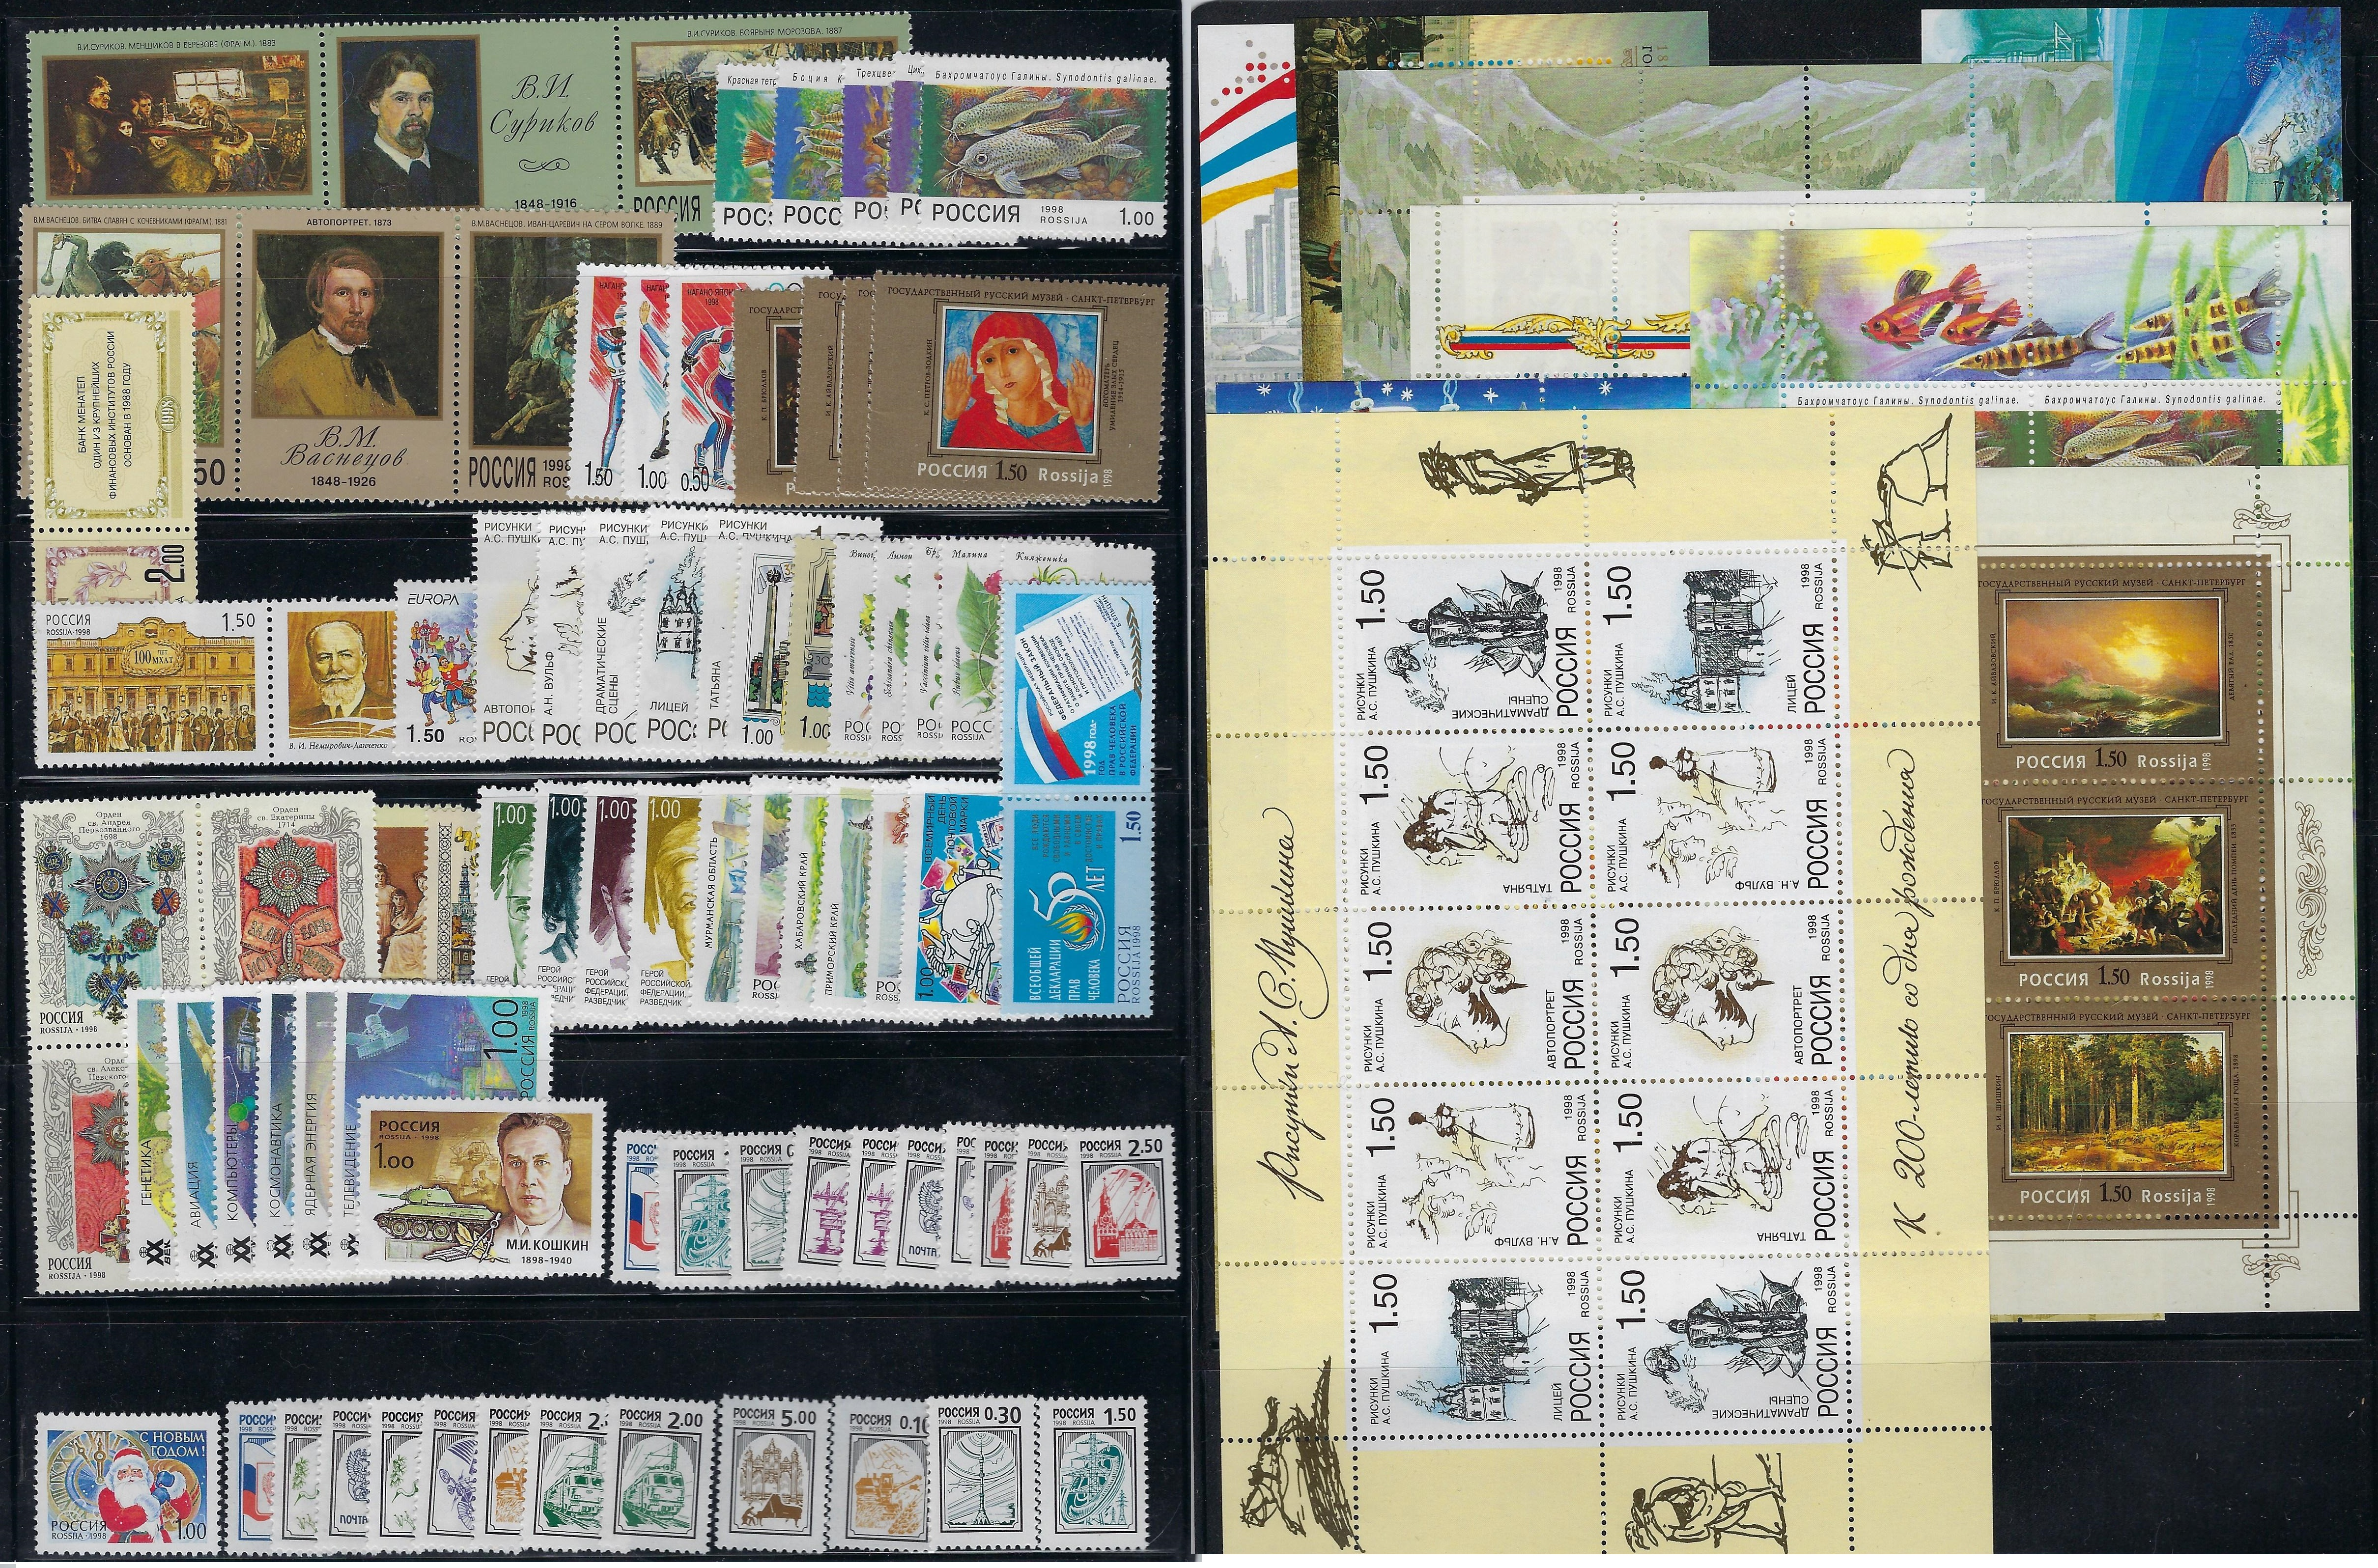 Russia - Year Sets RUSSIA YEAR SETS Scott 6423-6488